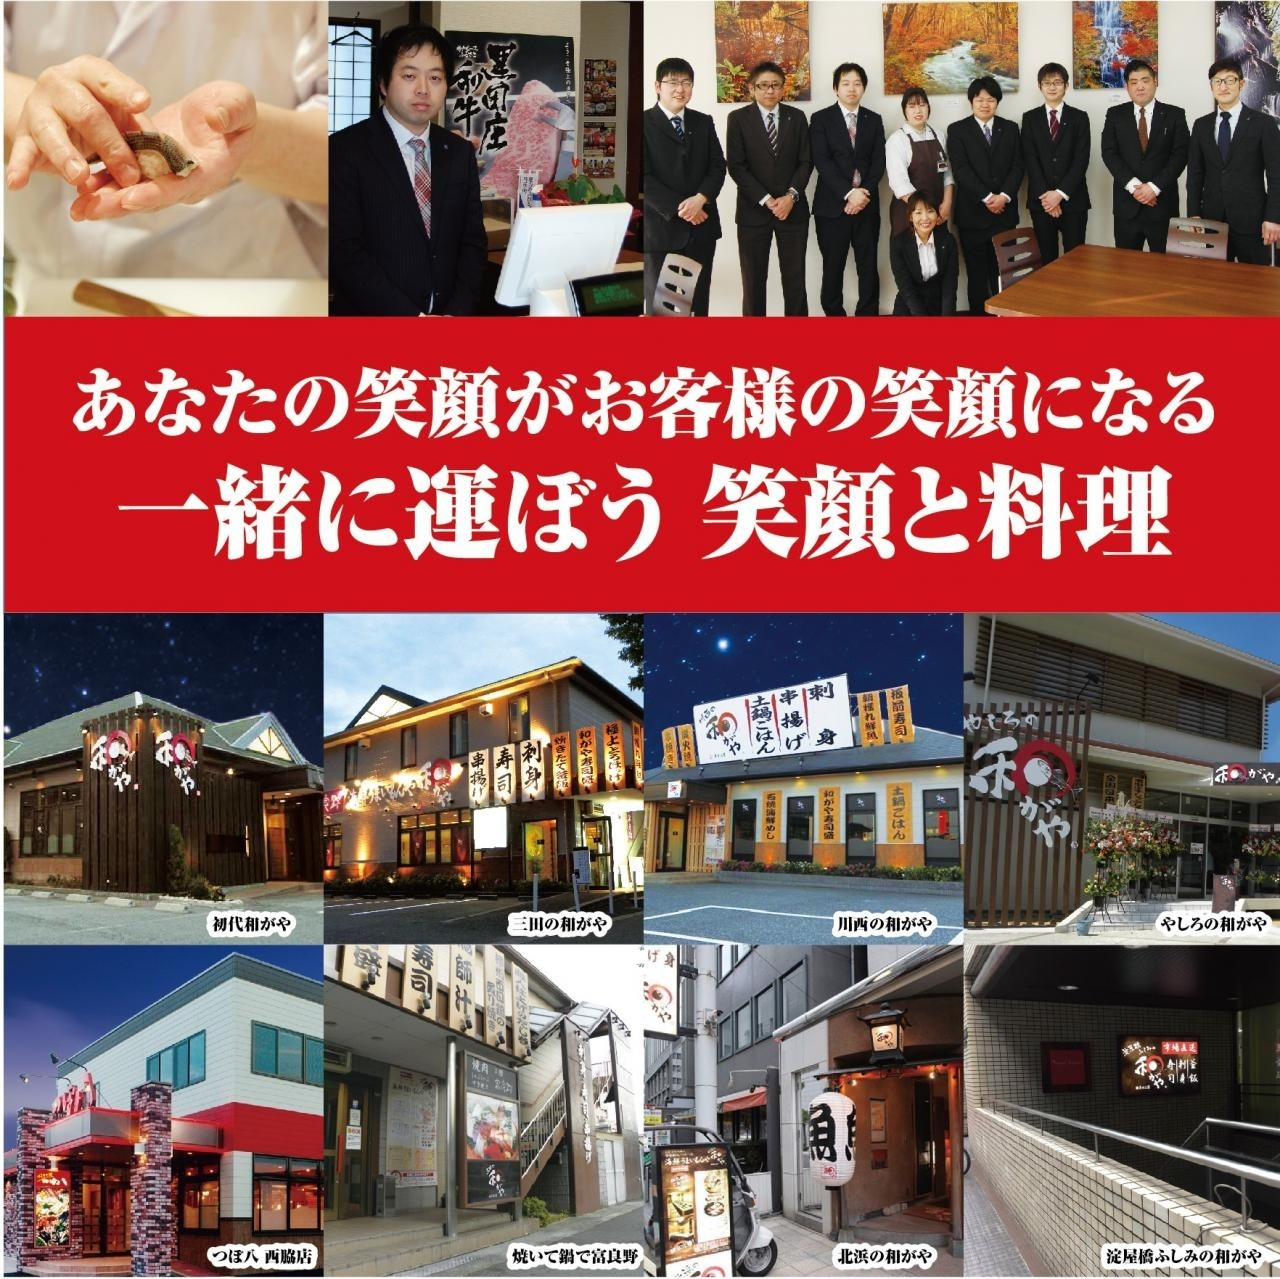 株式会社けんじフードサービス/【調理師/川西市】経験不問/Uターン歓迎/引っ越し費用補助あり/独立支援制度あり